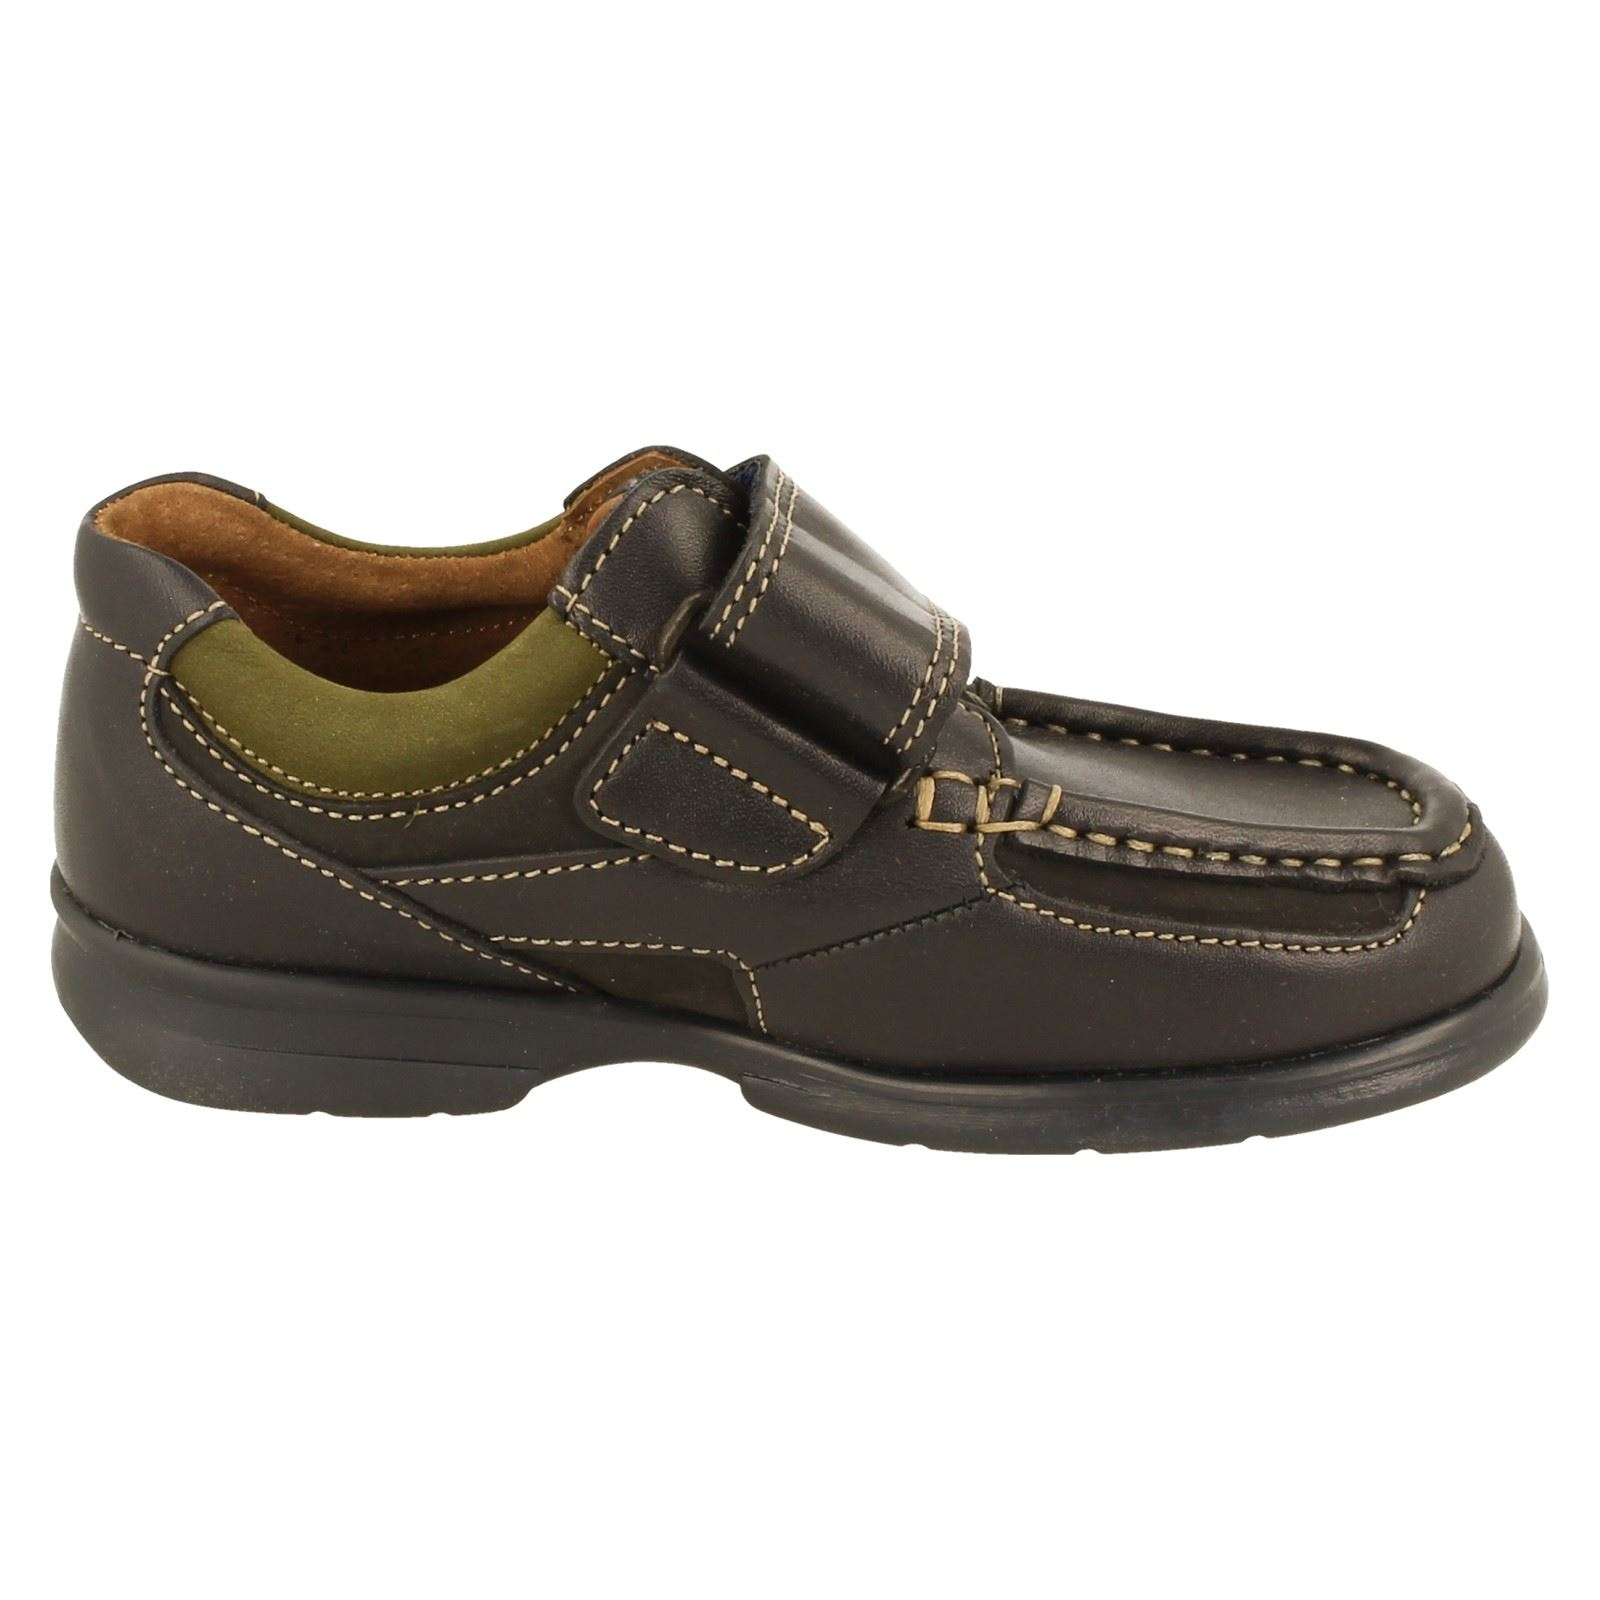 Boys Start Rite Casual Shoes The Style Barney -W